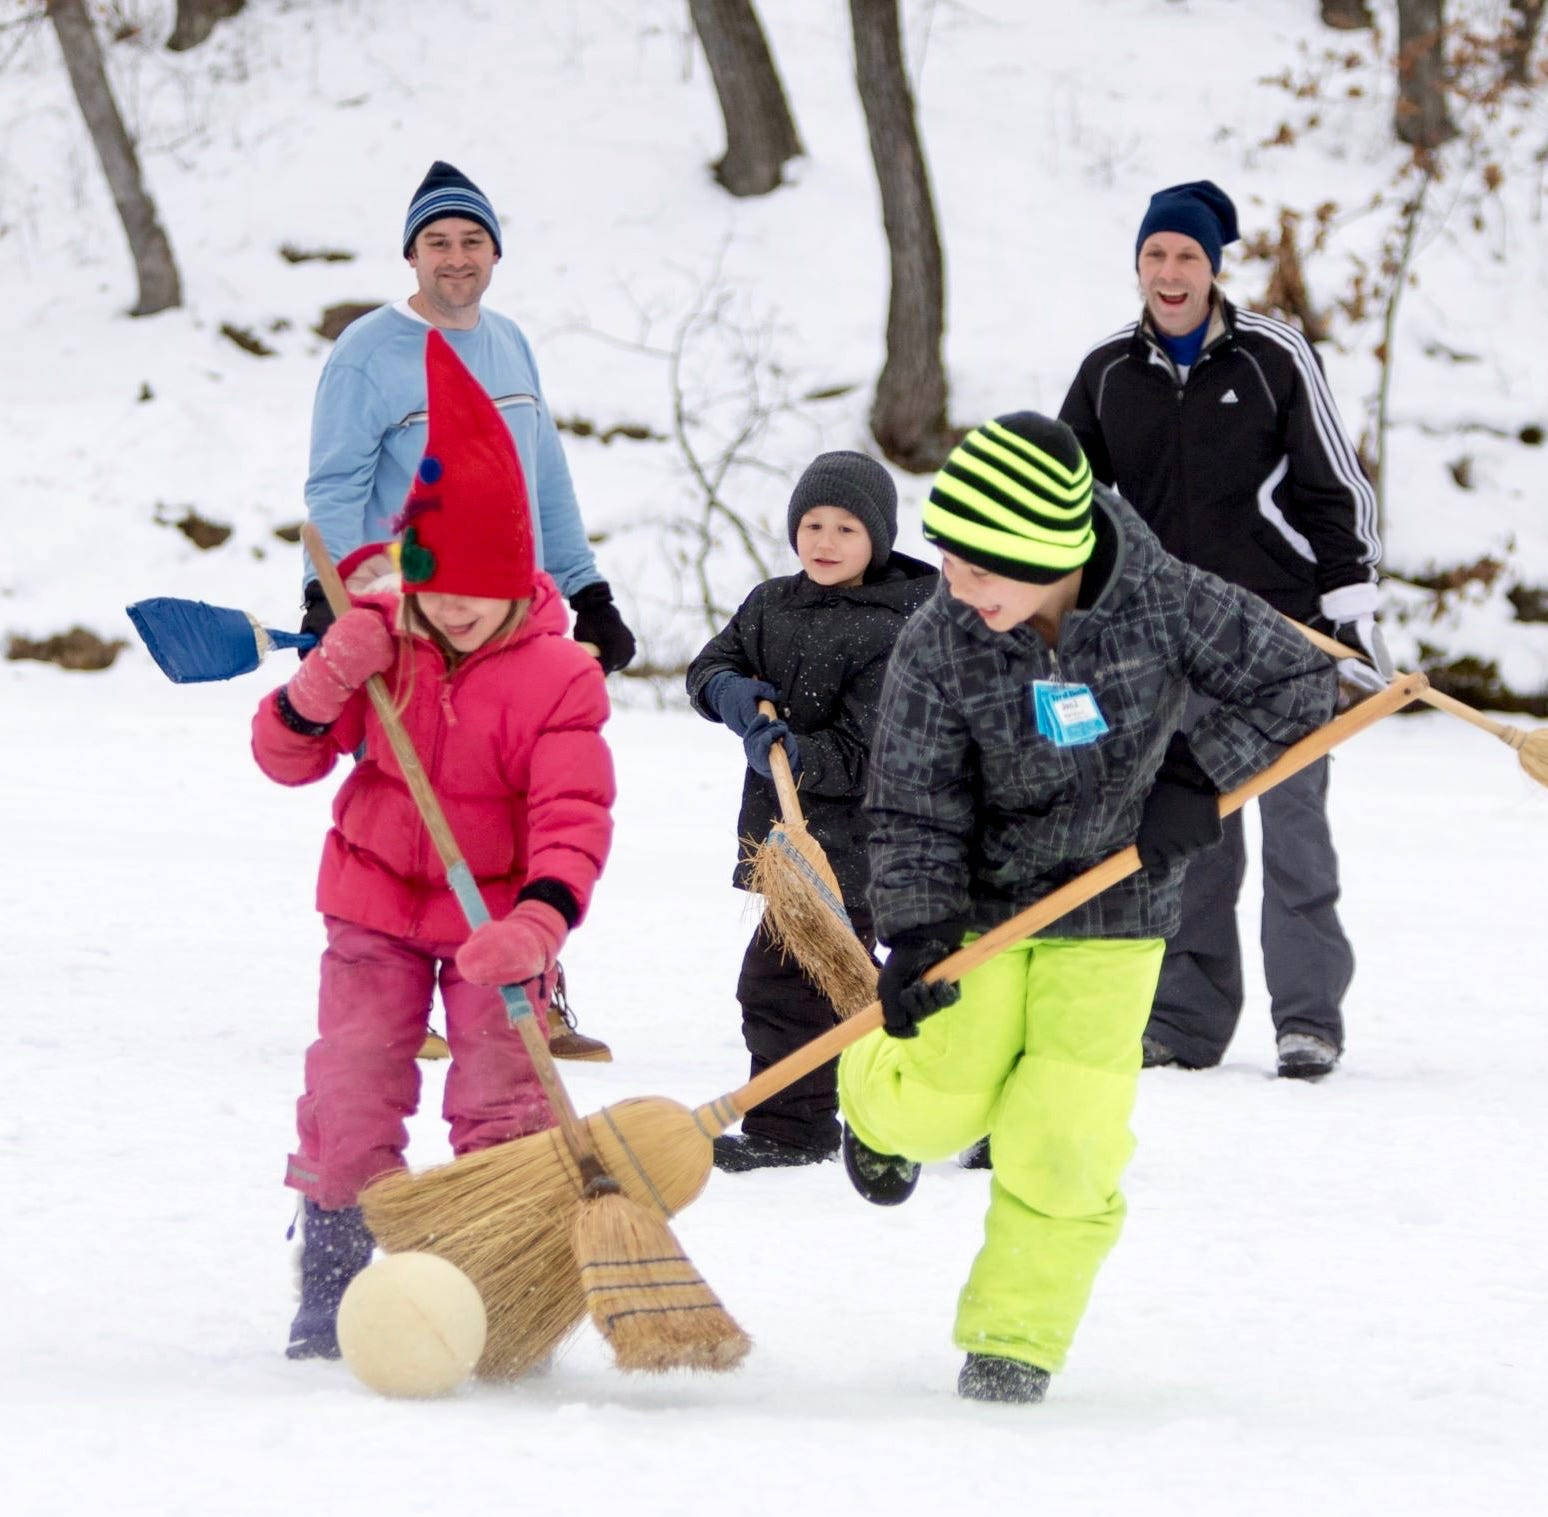 Beat cabin fever with pointy red hats at Mount Horeb's Scandihoovian Winter Festival